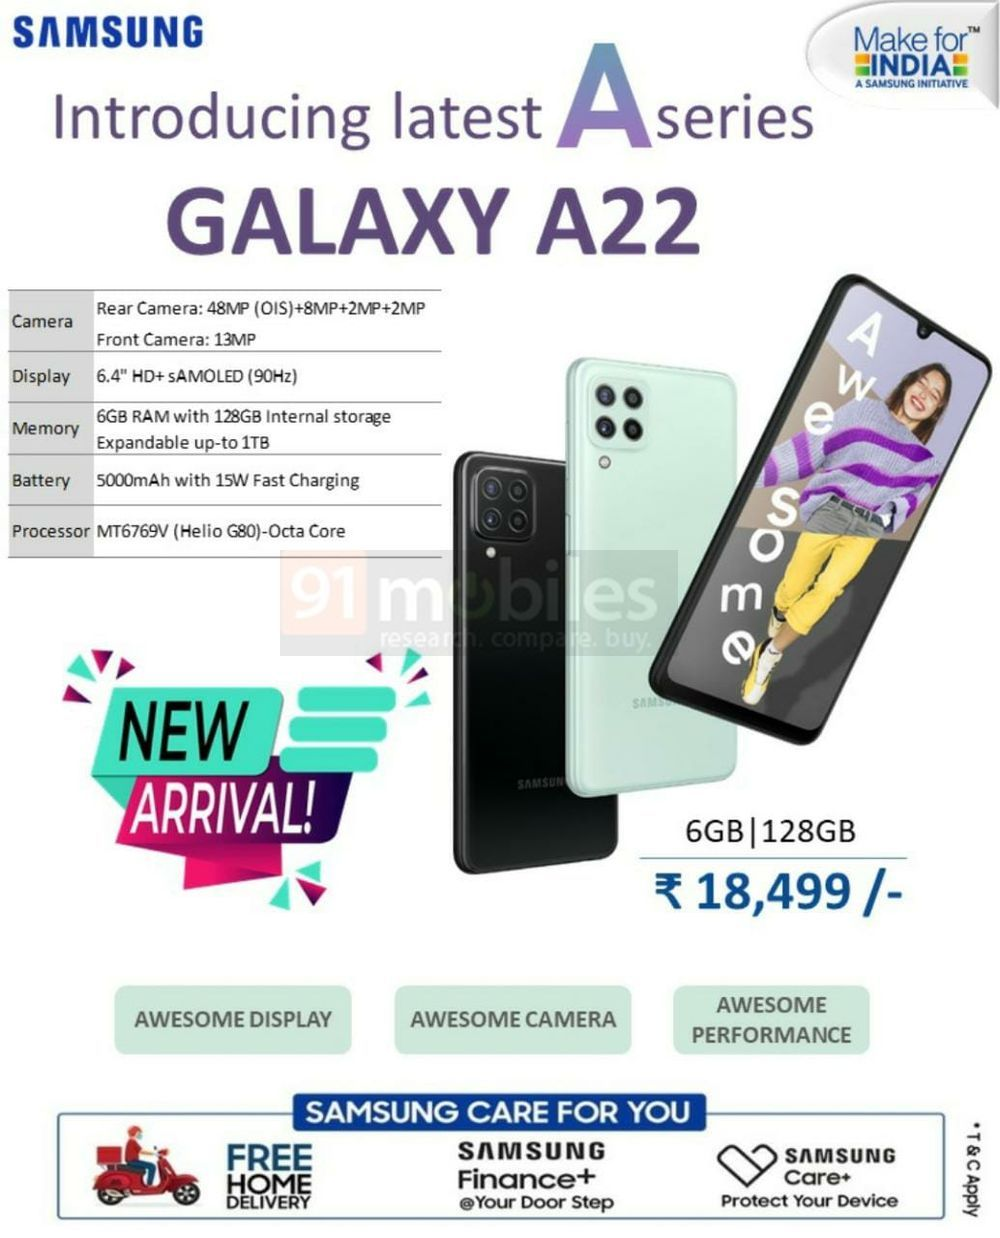 Samsung Galaxy A22 Price in India